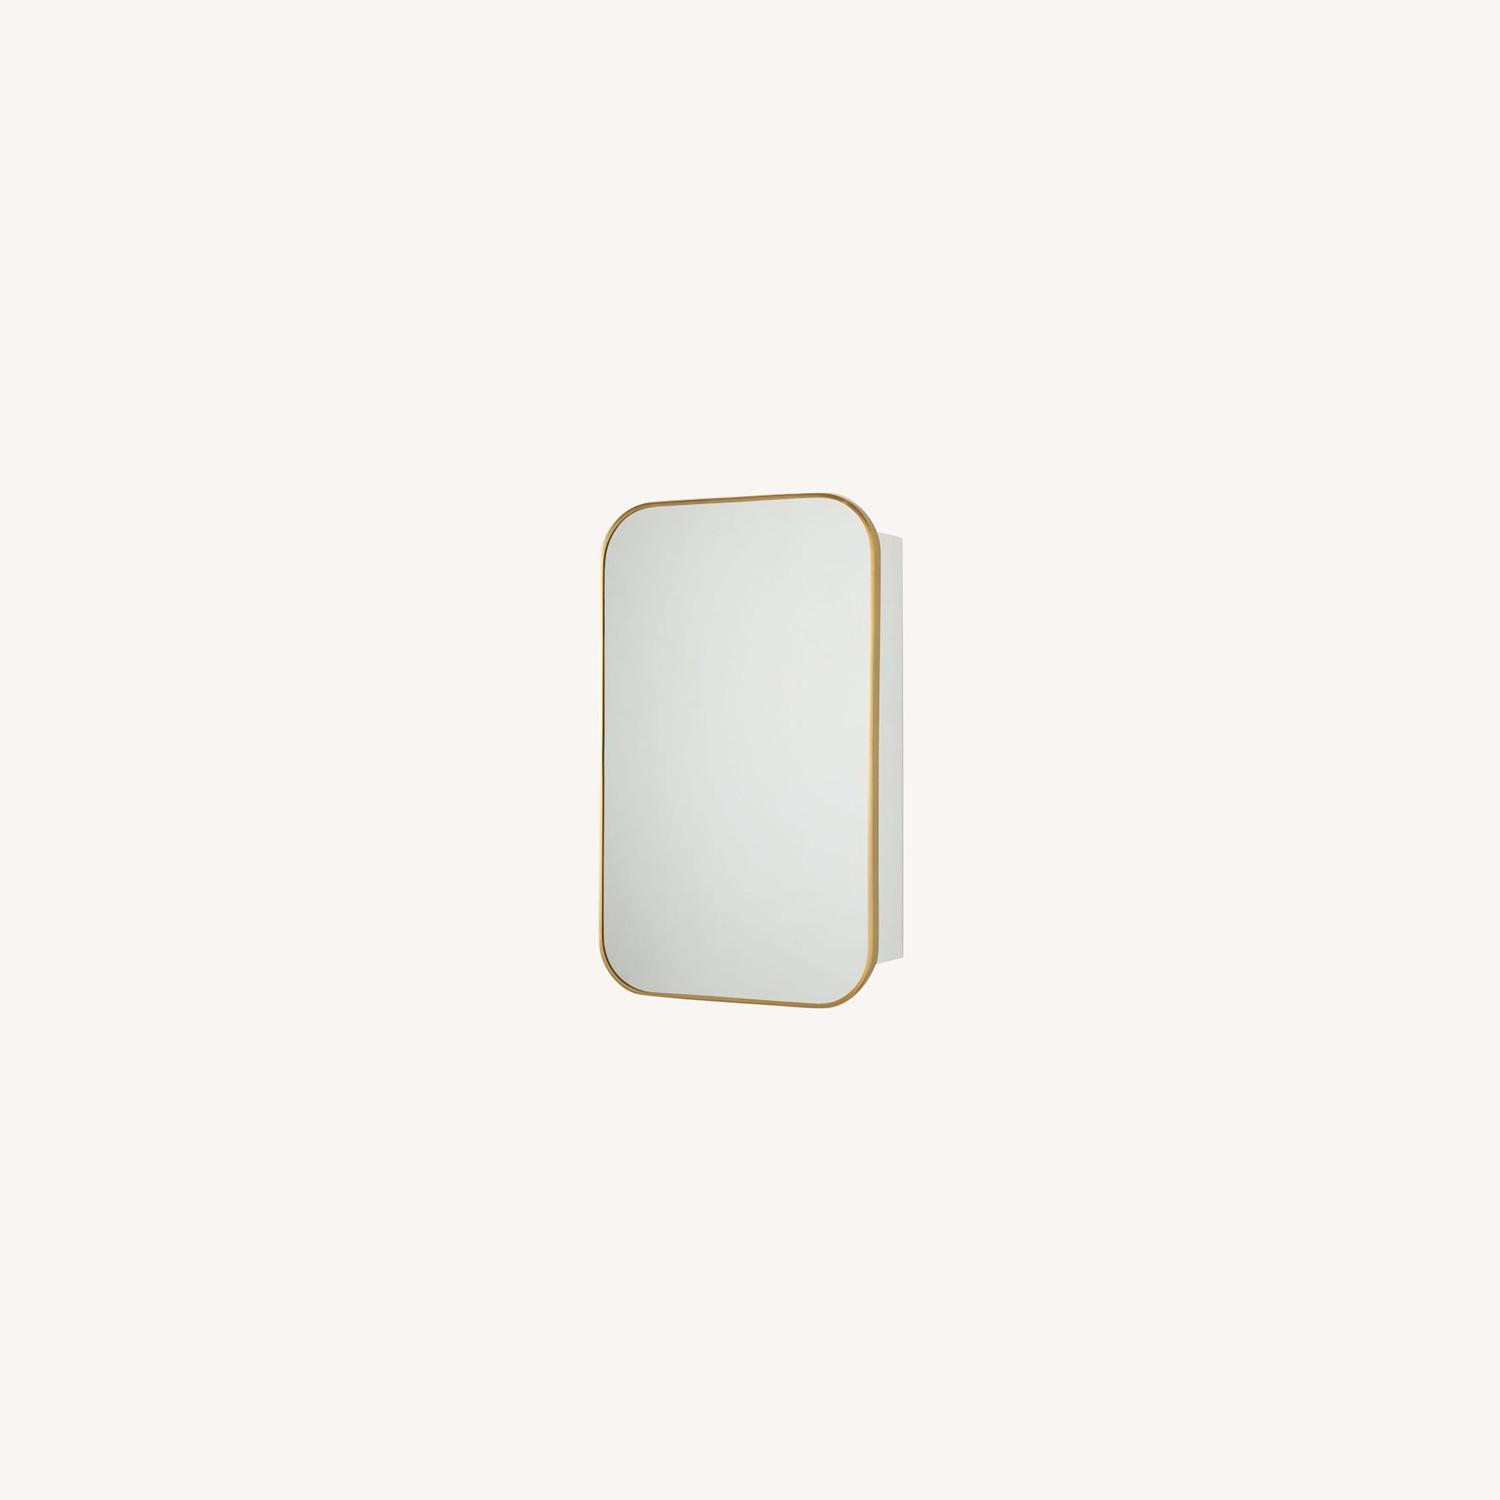 West Elm Seamless Medicine Cabinets, Antique Brass - image-0